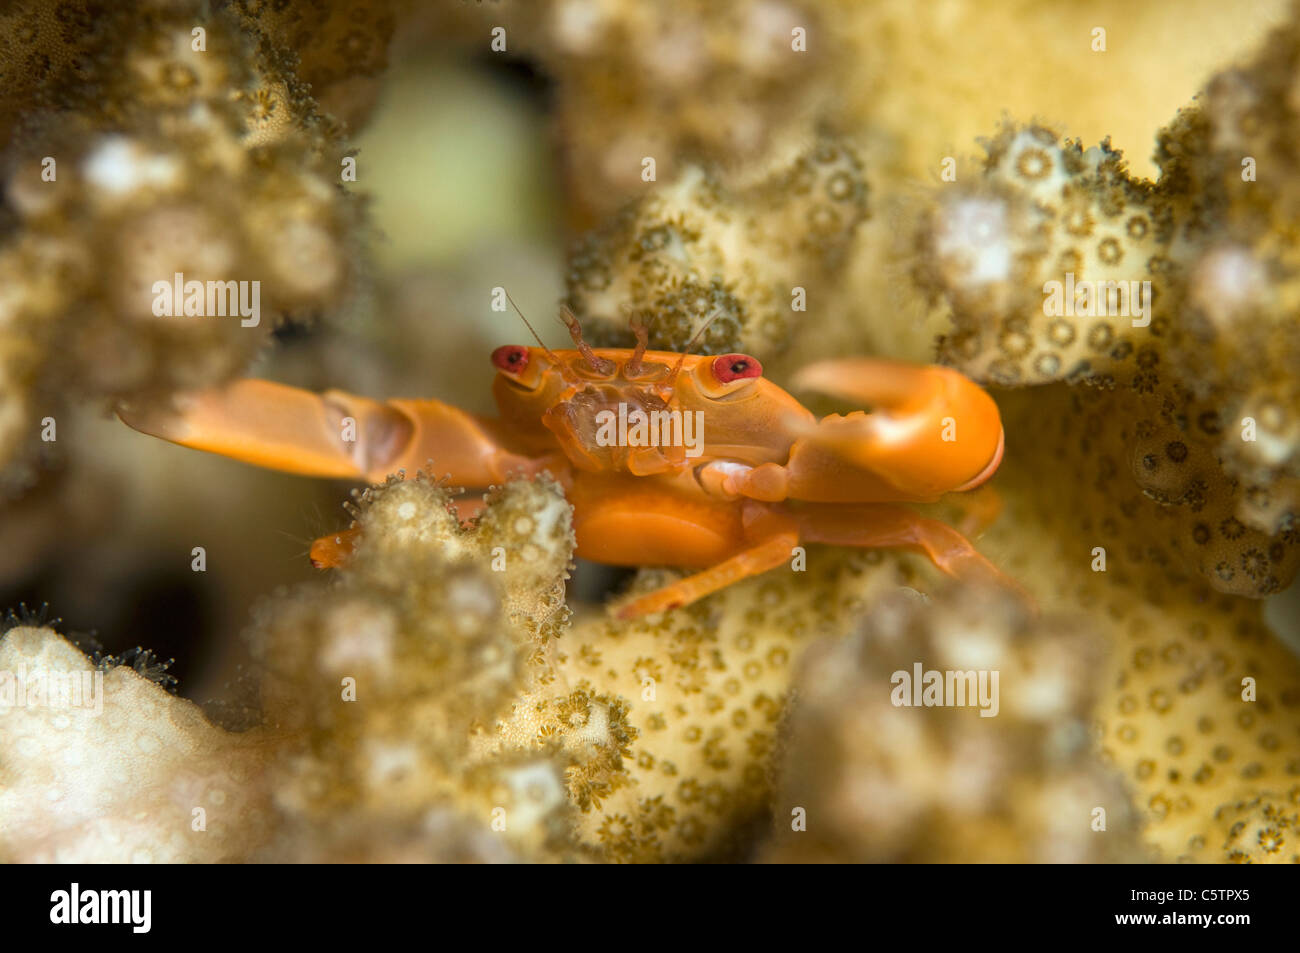 Egypt, Squat lobster (Galathea sp) on coral, close-up - Stock Image